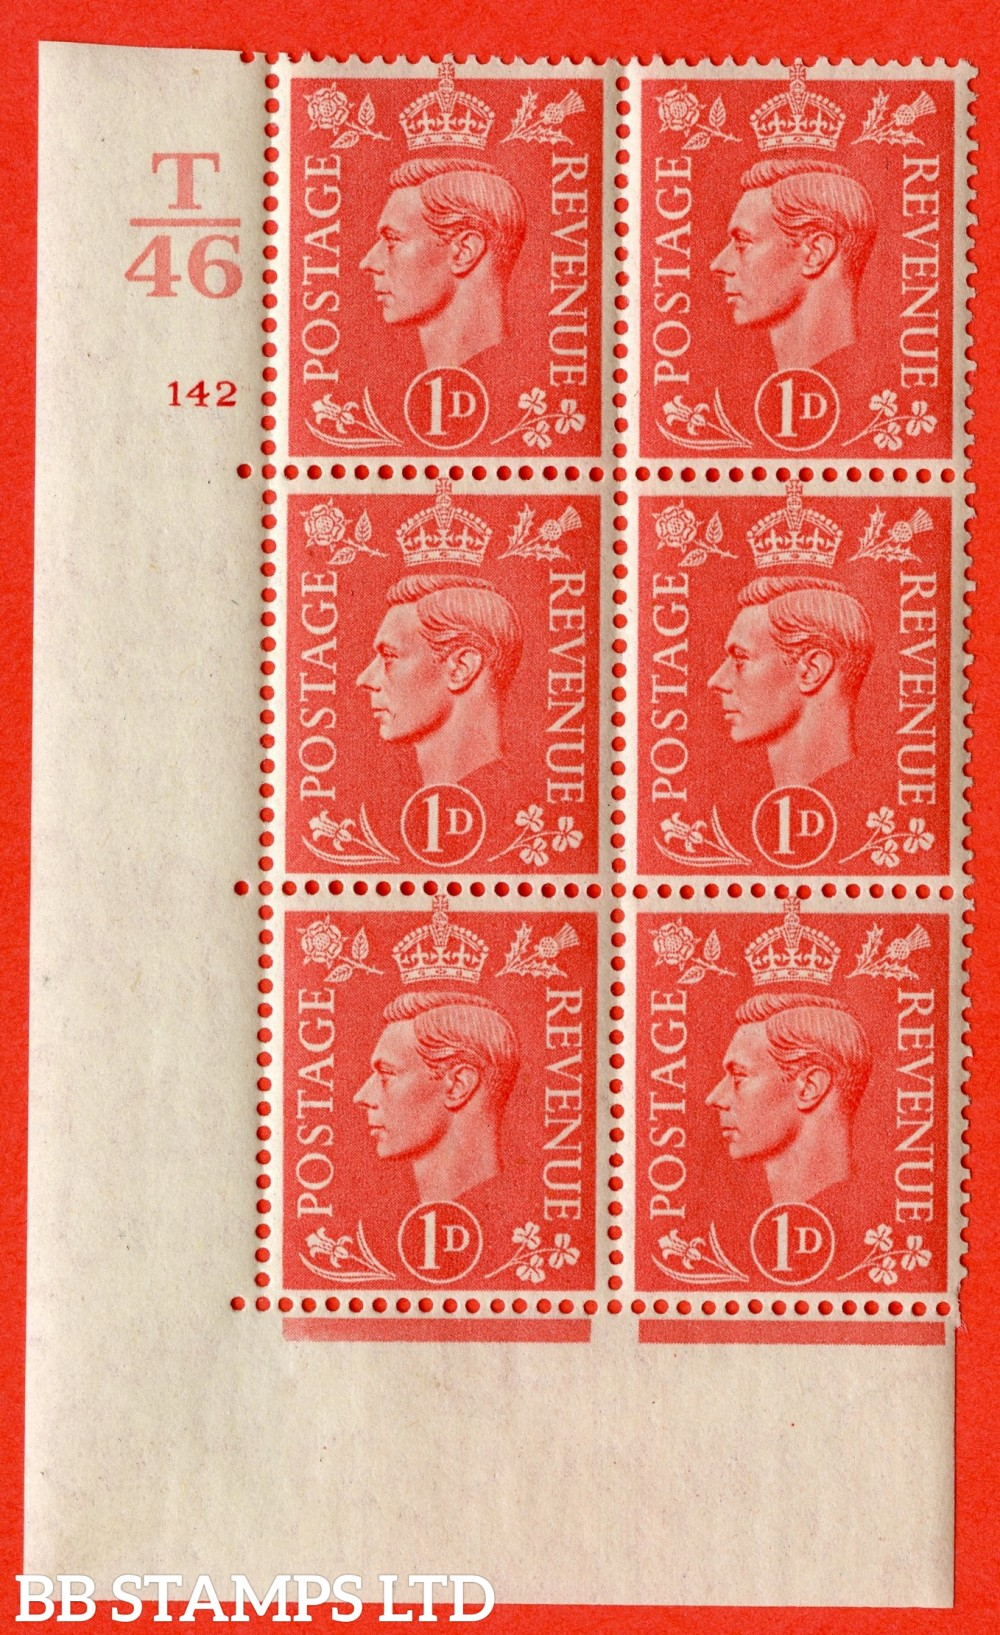 """SG. 486. Q5. 1d Pale scarlet. A fine lightly mounted mint """" Control T46 cylinder 142 no dot """" control block of 6 with perf type 5 E/I."""